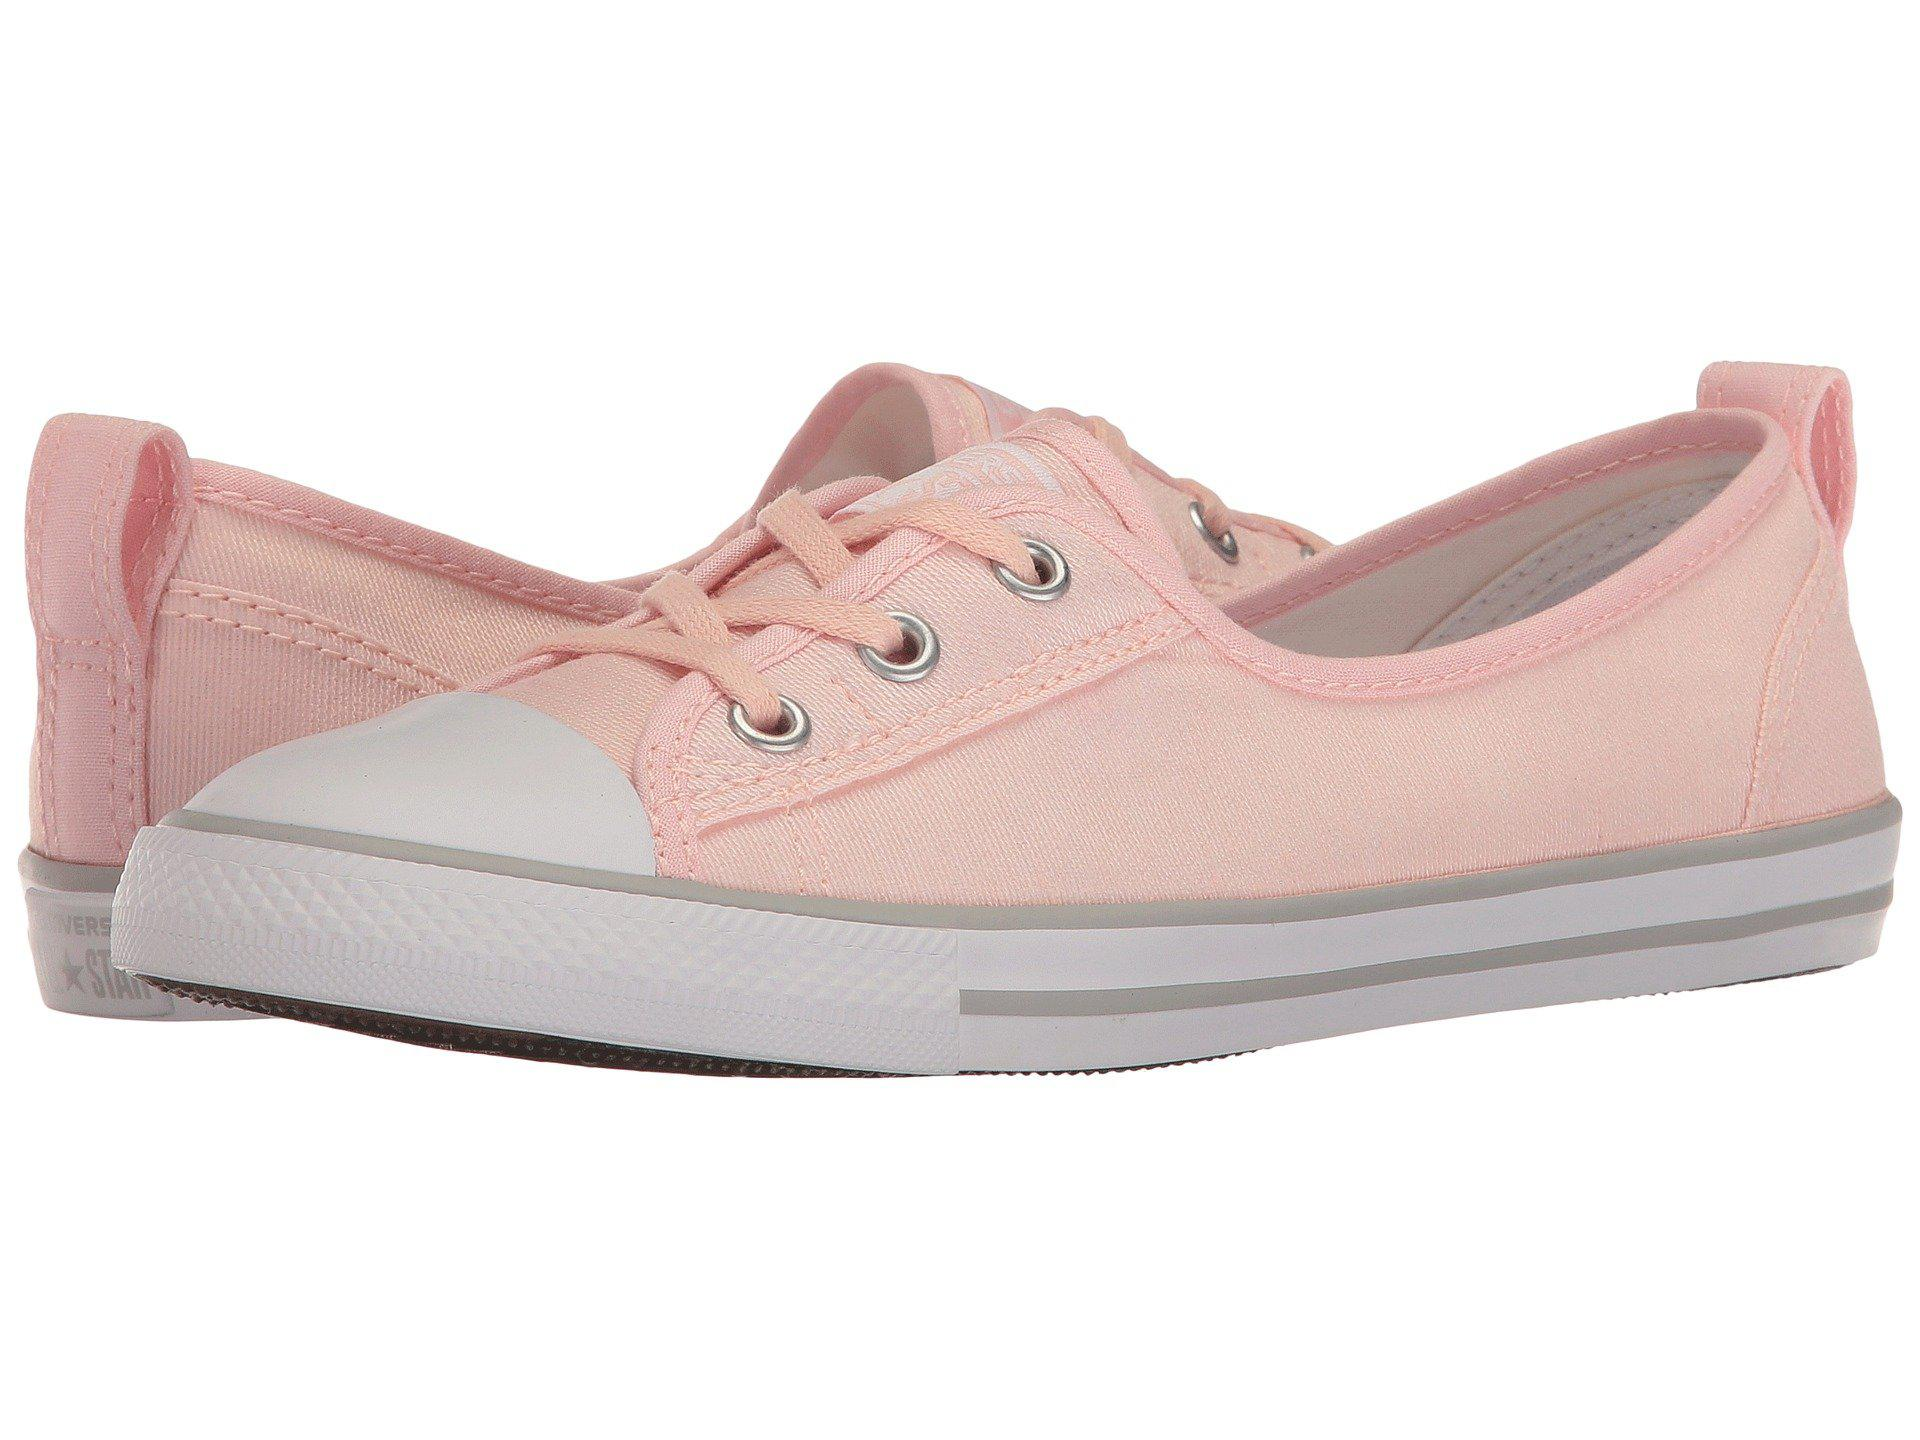 4c67acc4ad97 Lyst - Converse Chuck Taylor® All Star® Ballet Lace Slip-on in Pink